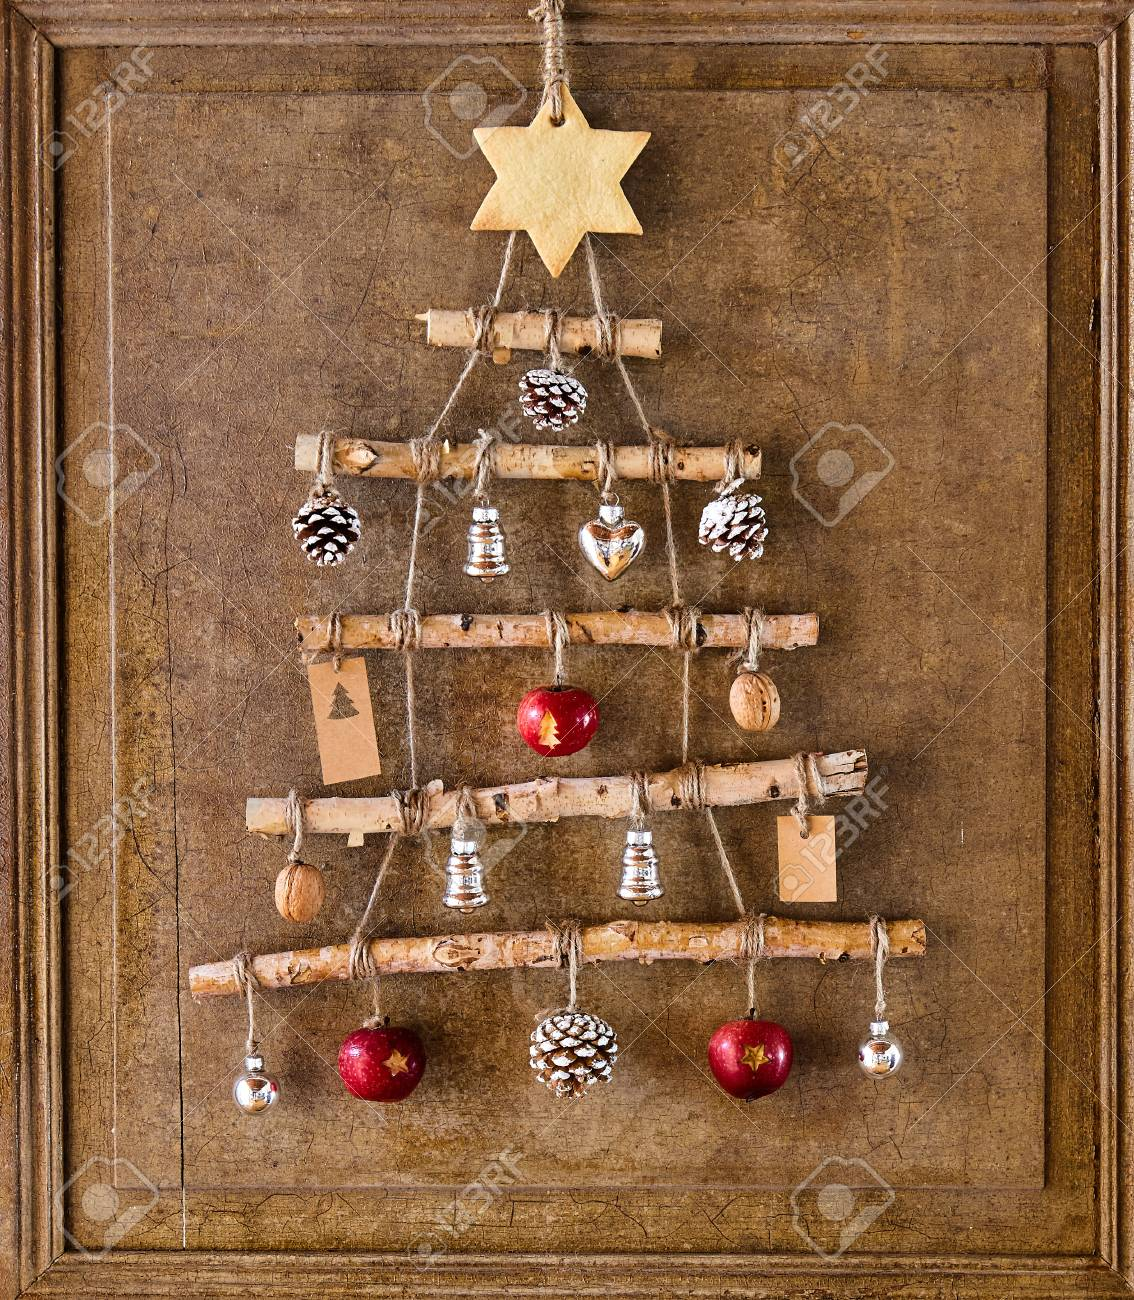 Rustic Christmas Tree Made From Sticks And Ornaments With Large